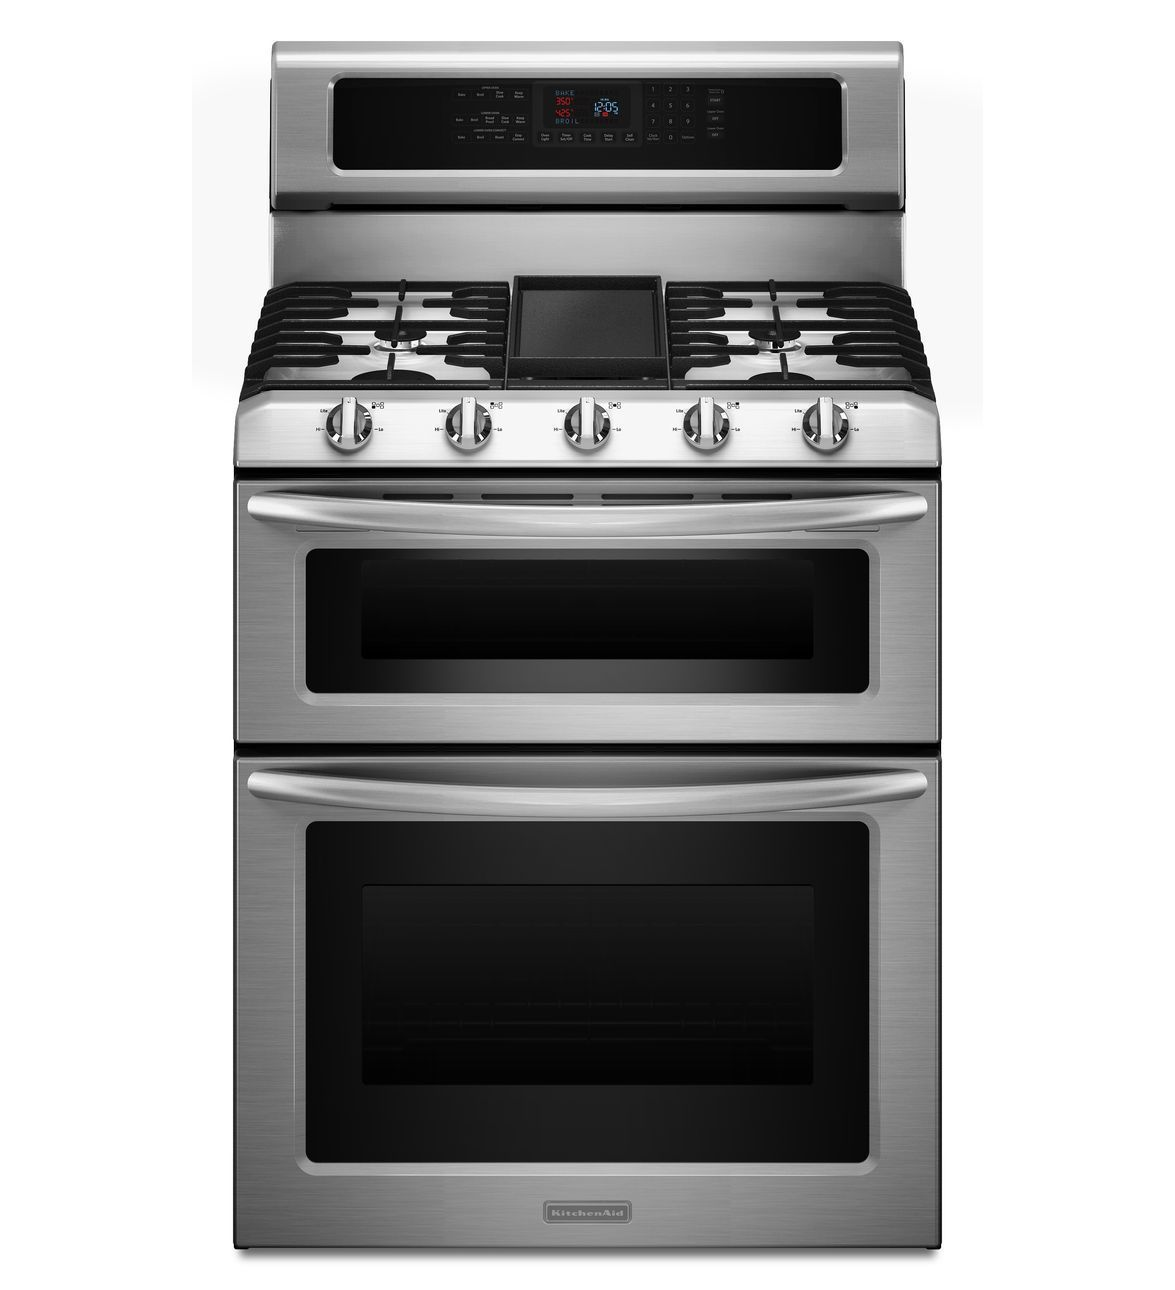 KitchenAid® 30 Inch, 5 Burner Freestanding Double Oven Range With Even